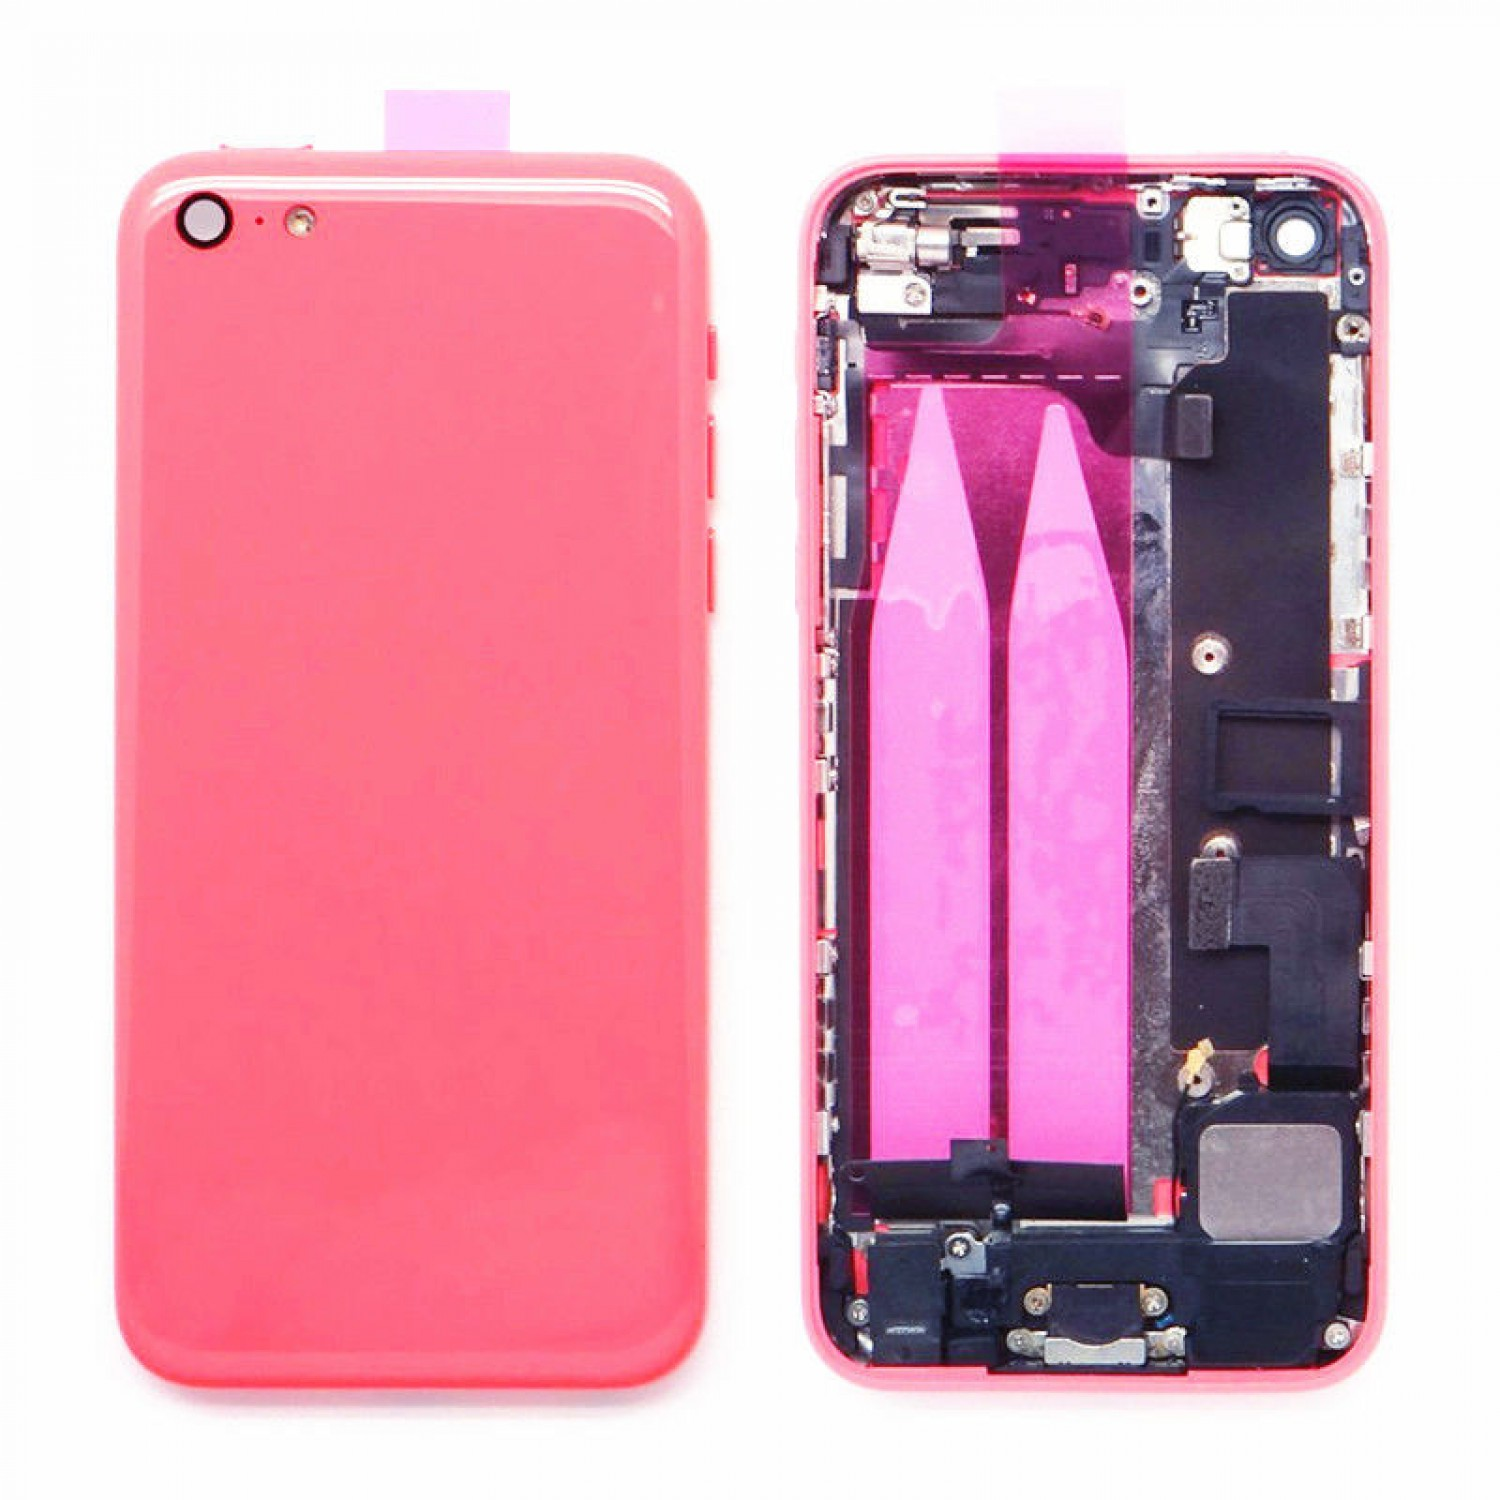 back housing parts installed for iphone 5C